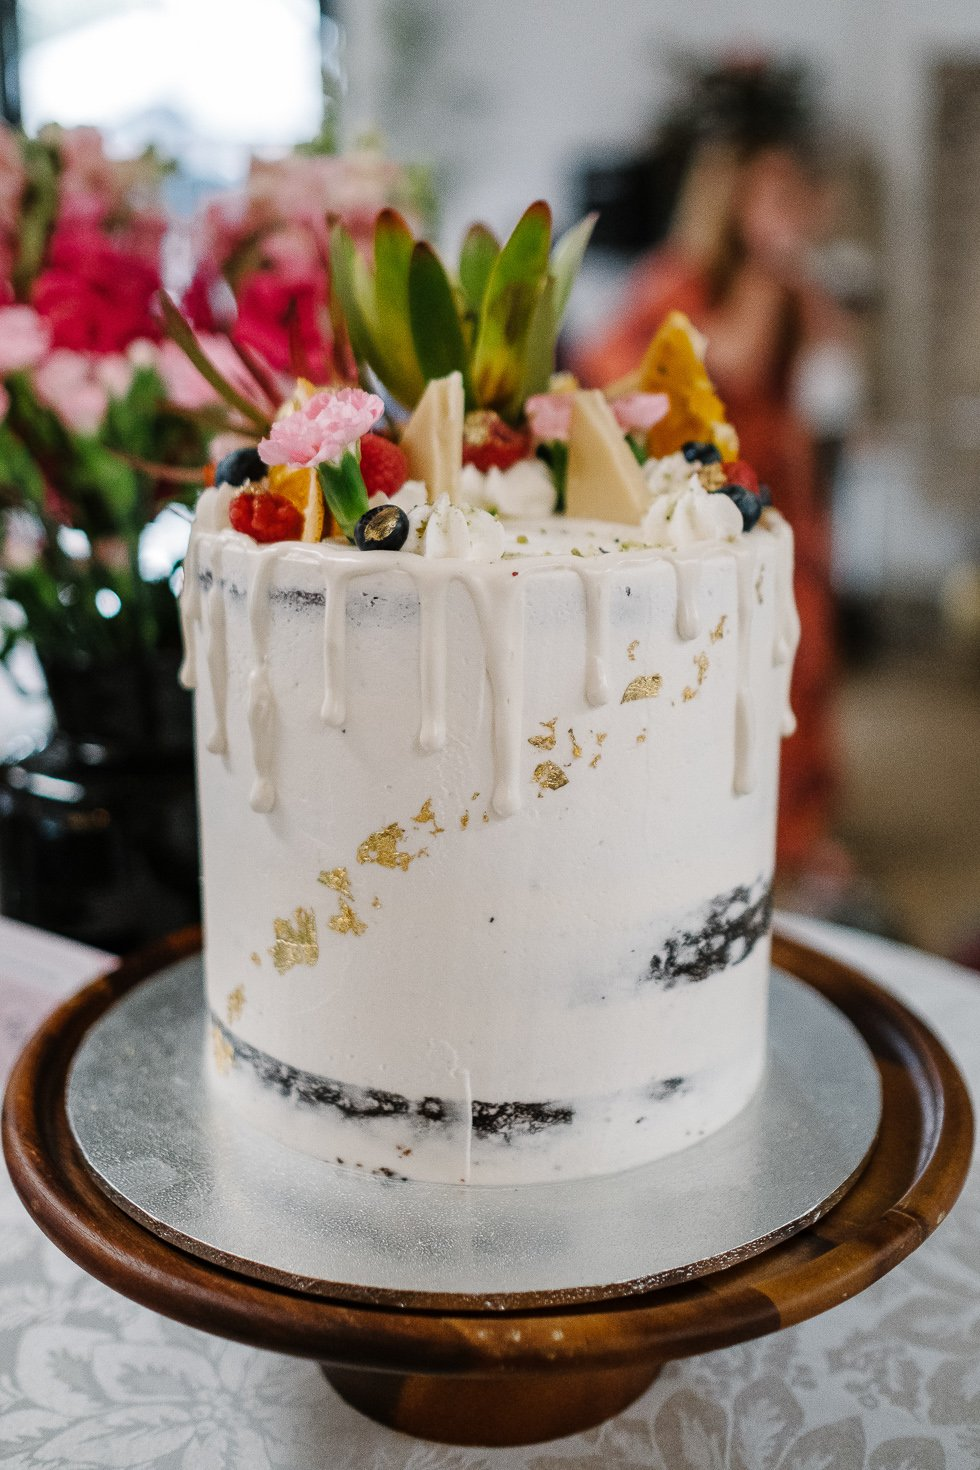 Vegan wedding cake in Sydney